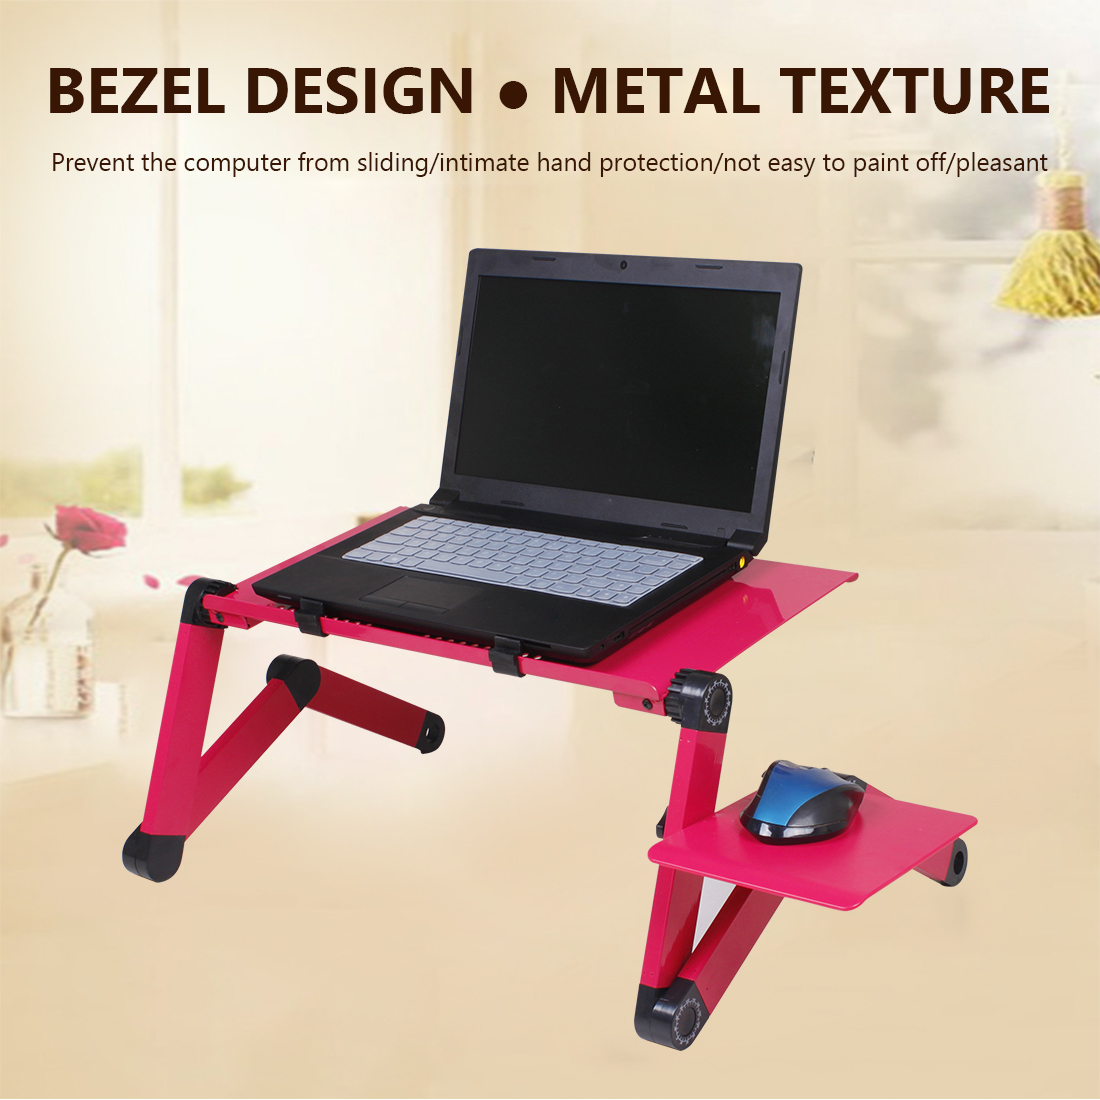 Adjustable Notebook Desk  Aluminum Laptop Desk Portable Bed Lapdesk Tray PC Table Stand Notebook Table Desk Stand With Mouse Pad